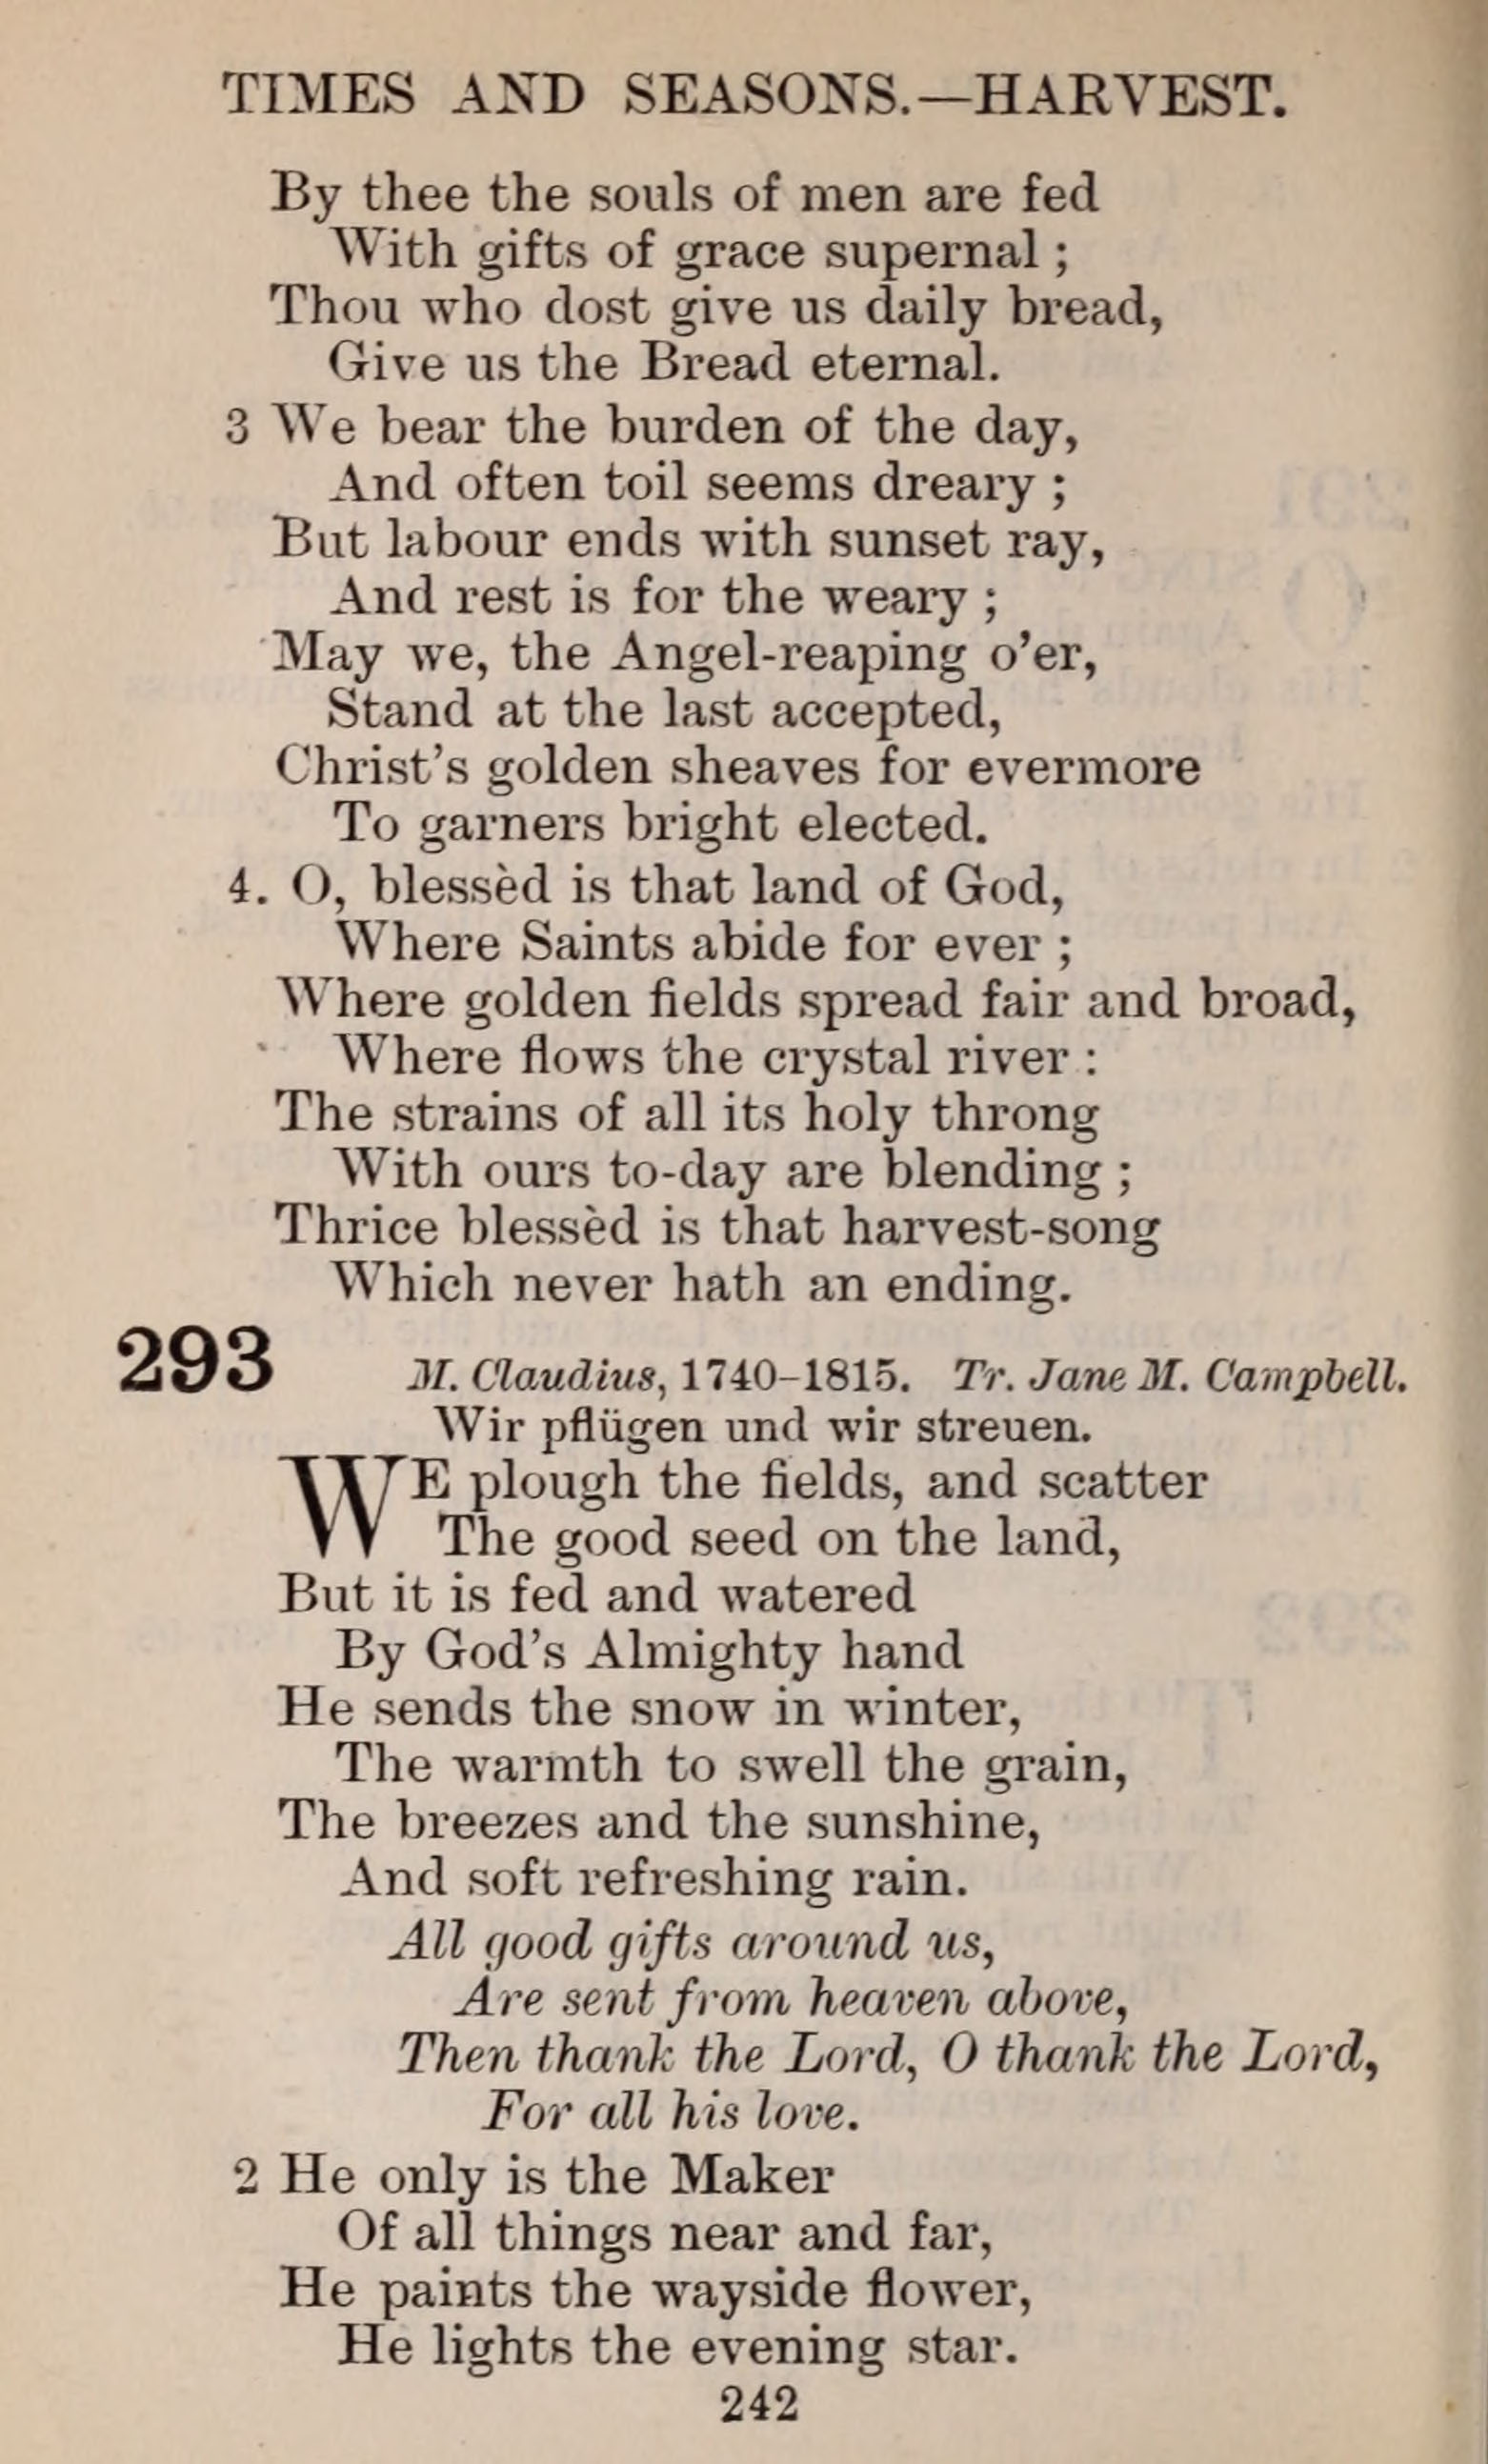 The English Hymnal page 242